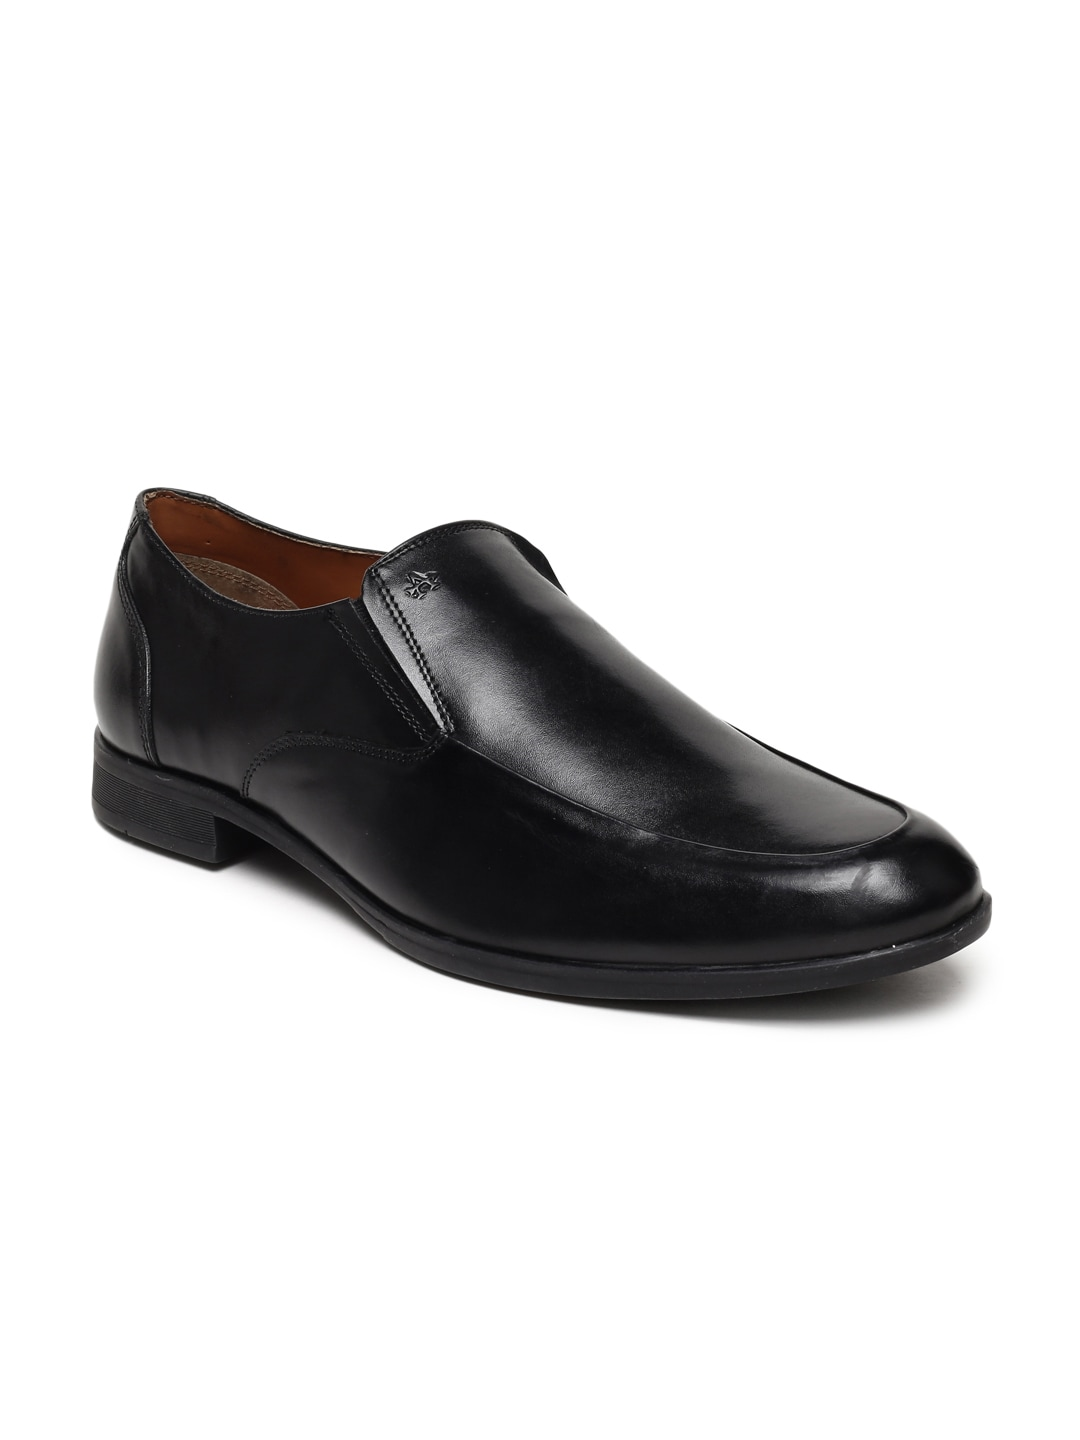 713048c74b12 Shoes for Men - Buy Mens Shoes Online at Best Price